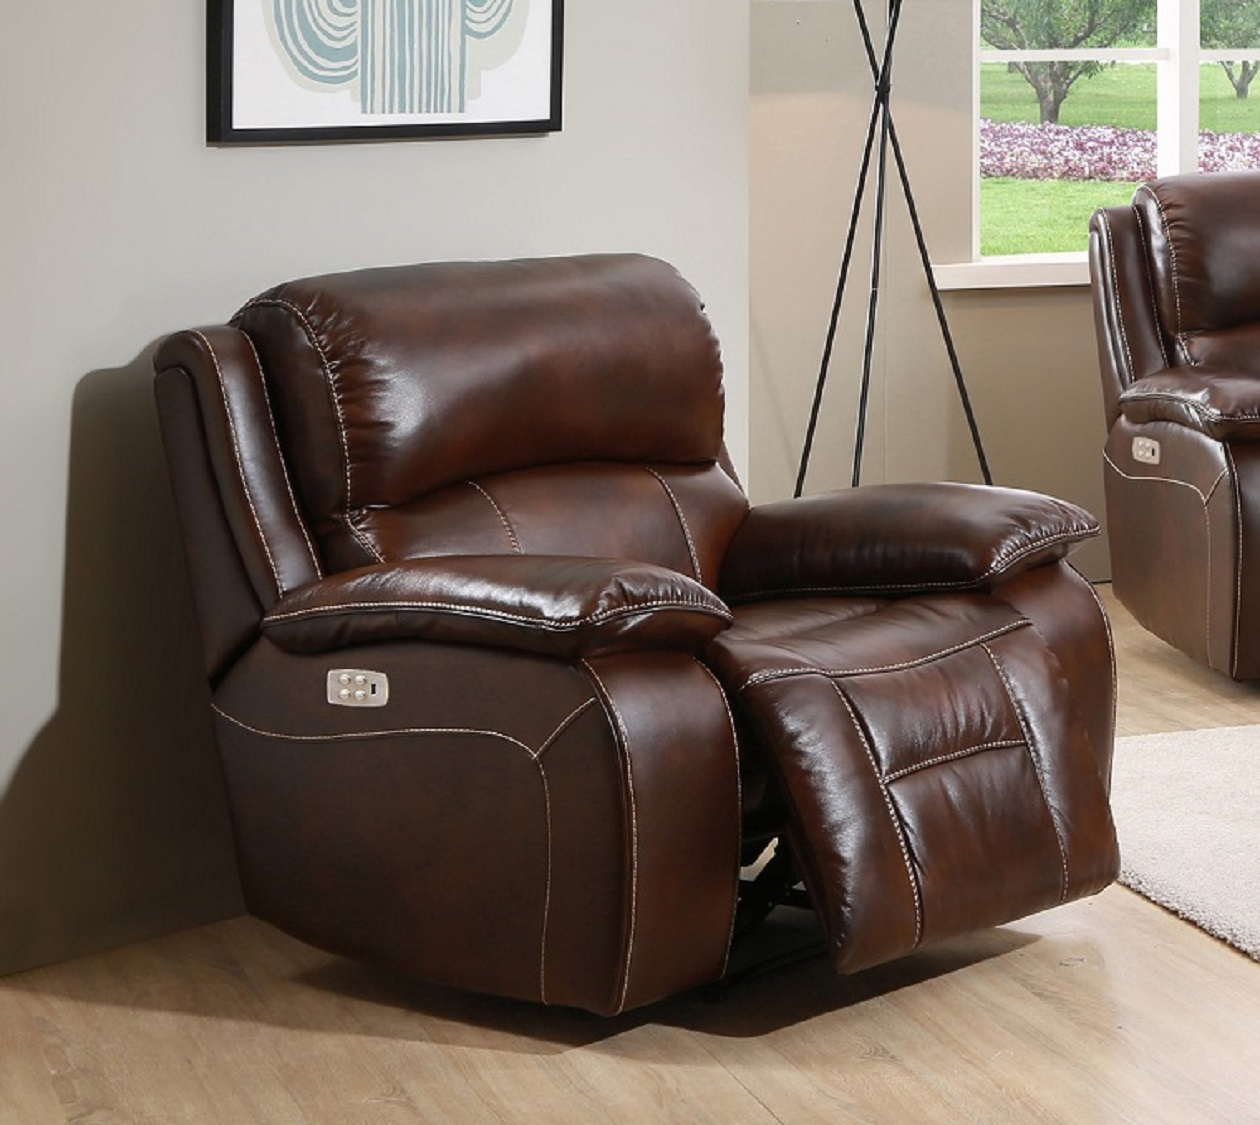 Peachy Westminster Top Grain Leather Power Recliner Power Headrest Bralicious Painted Fabric Chair Ideas Braliciousco